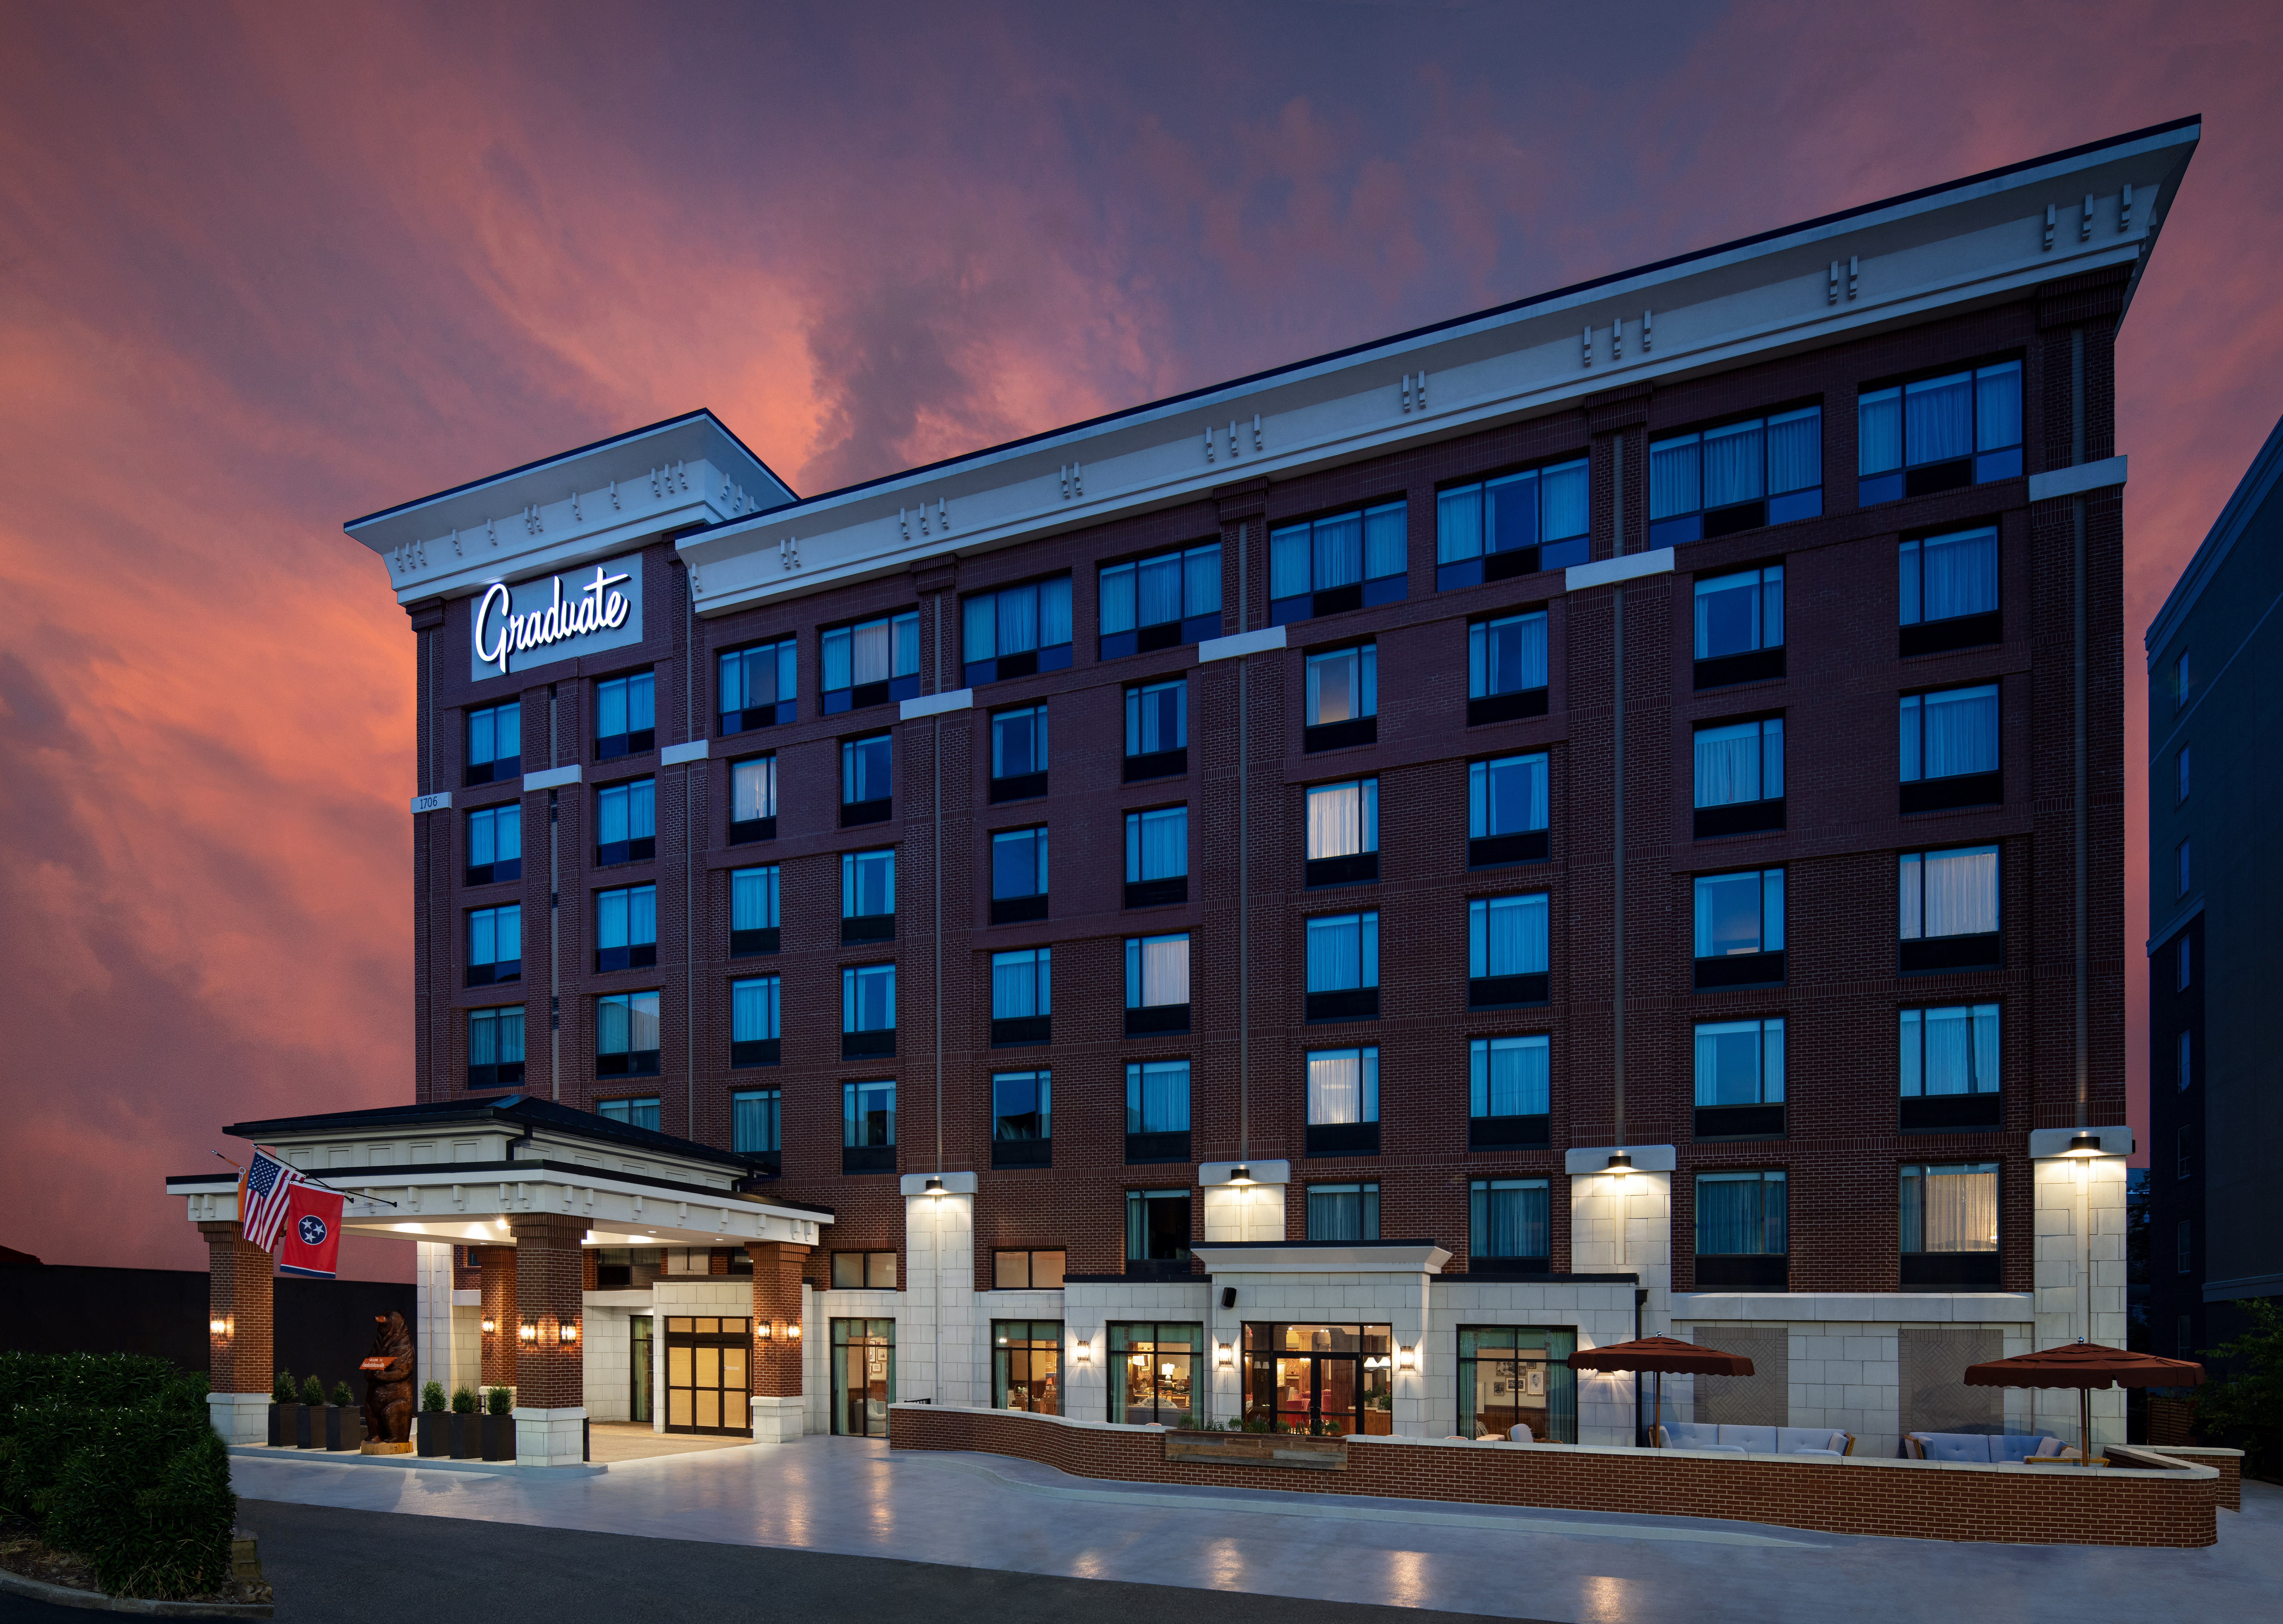 Graduate Knoxville Knoxville Tn Hotels Gds Reservation Codes Travel Weekly